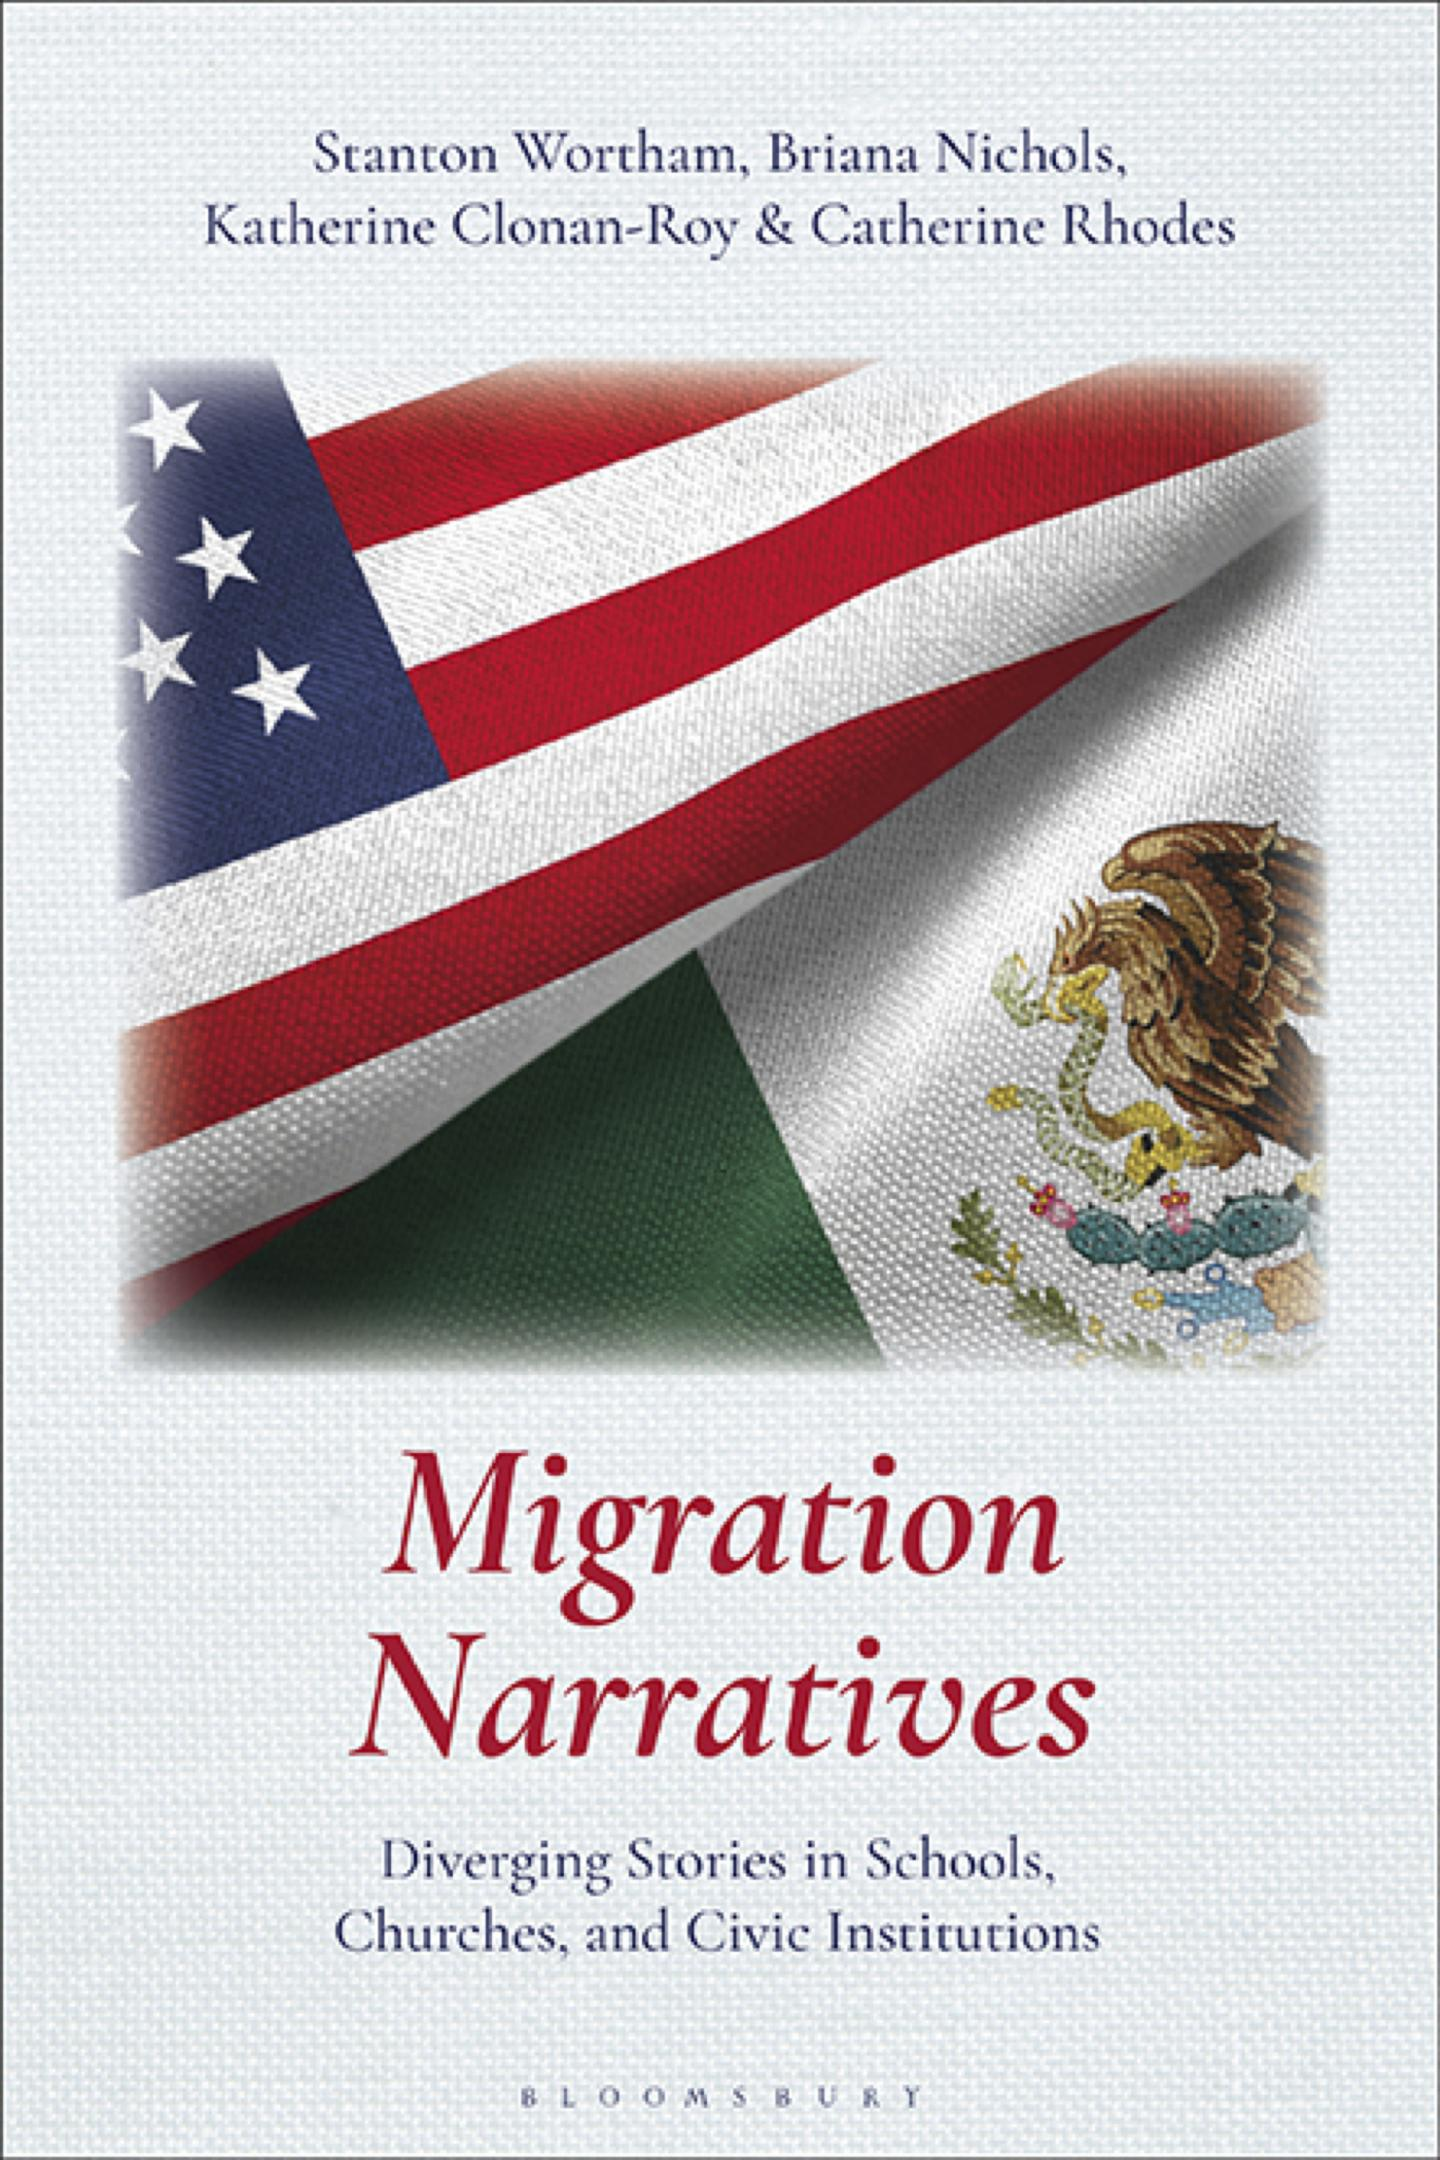 Migration Narratives: Diverging Stories in Schools, Churches and Civic Institutions